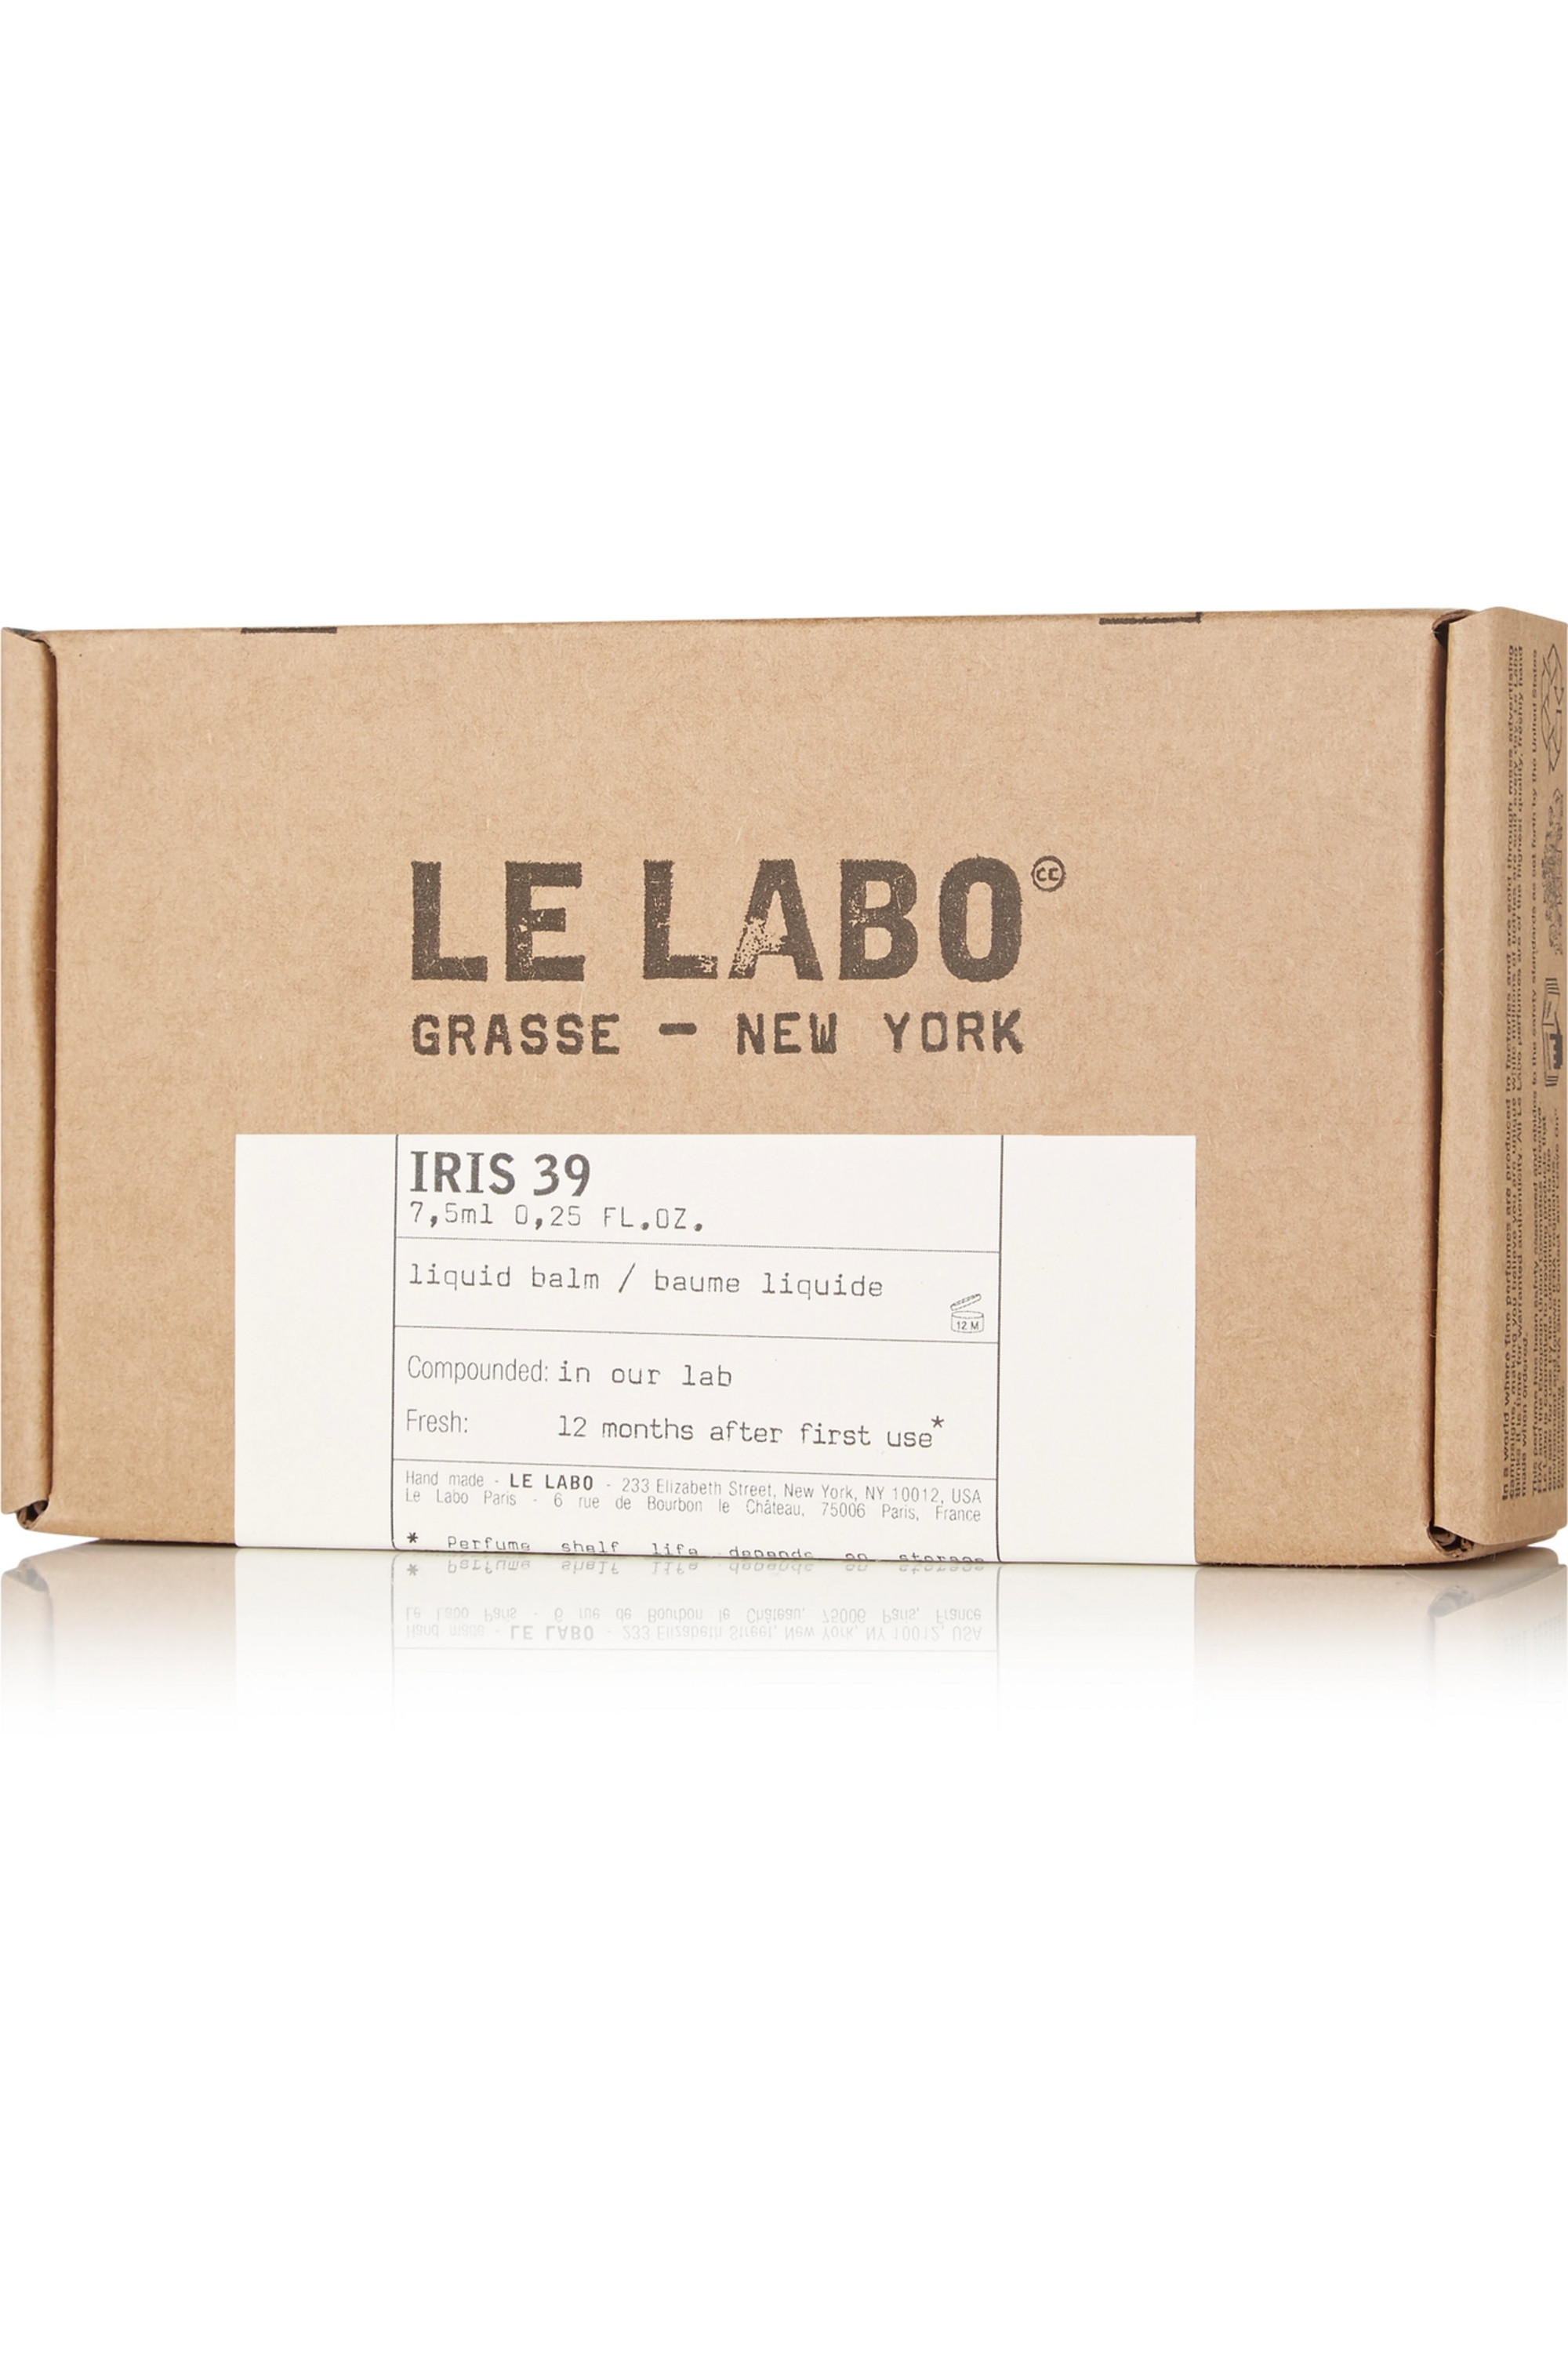 LE LABO Iris 39 Liquid Balm, 7.5ml